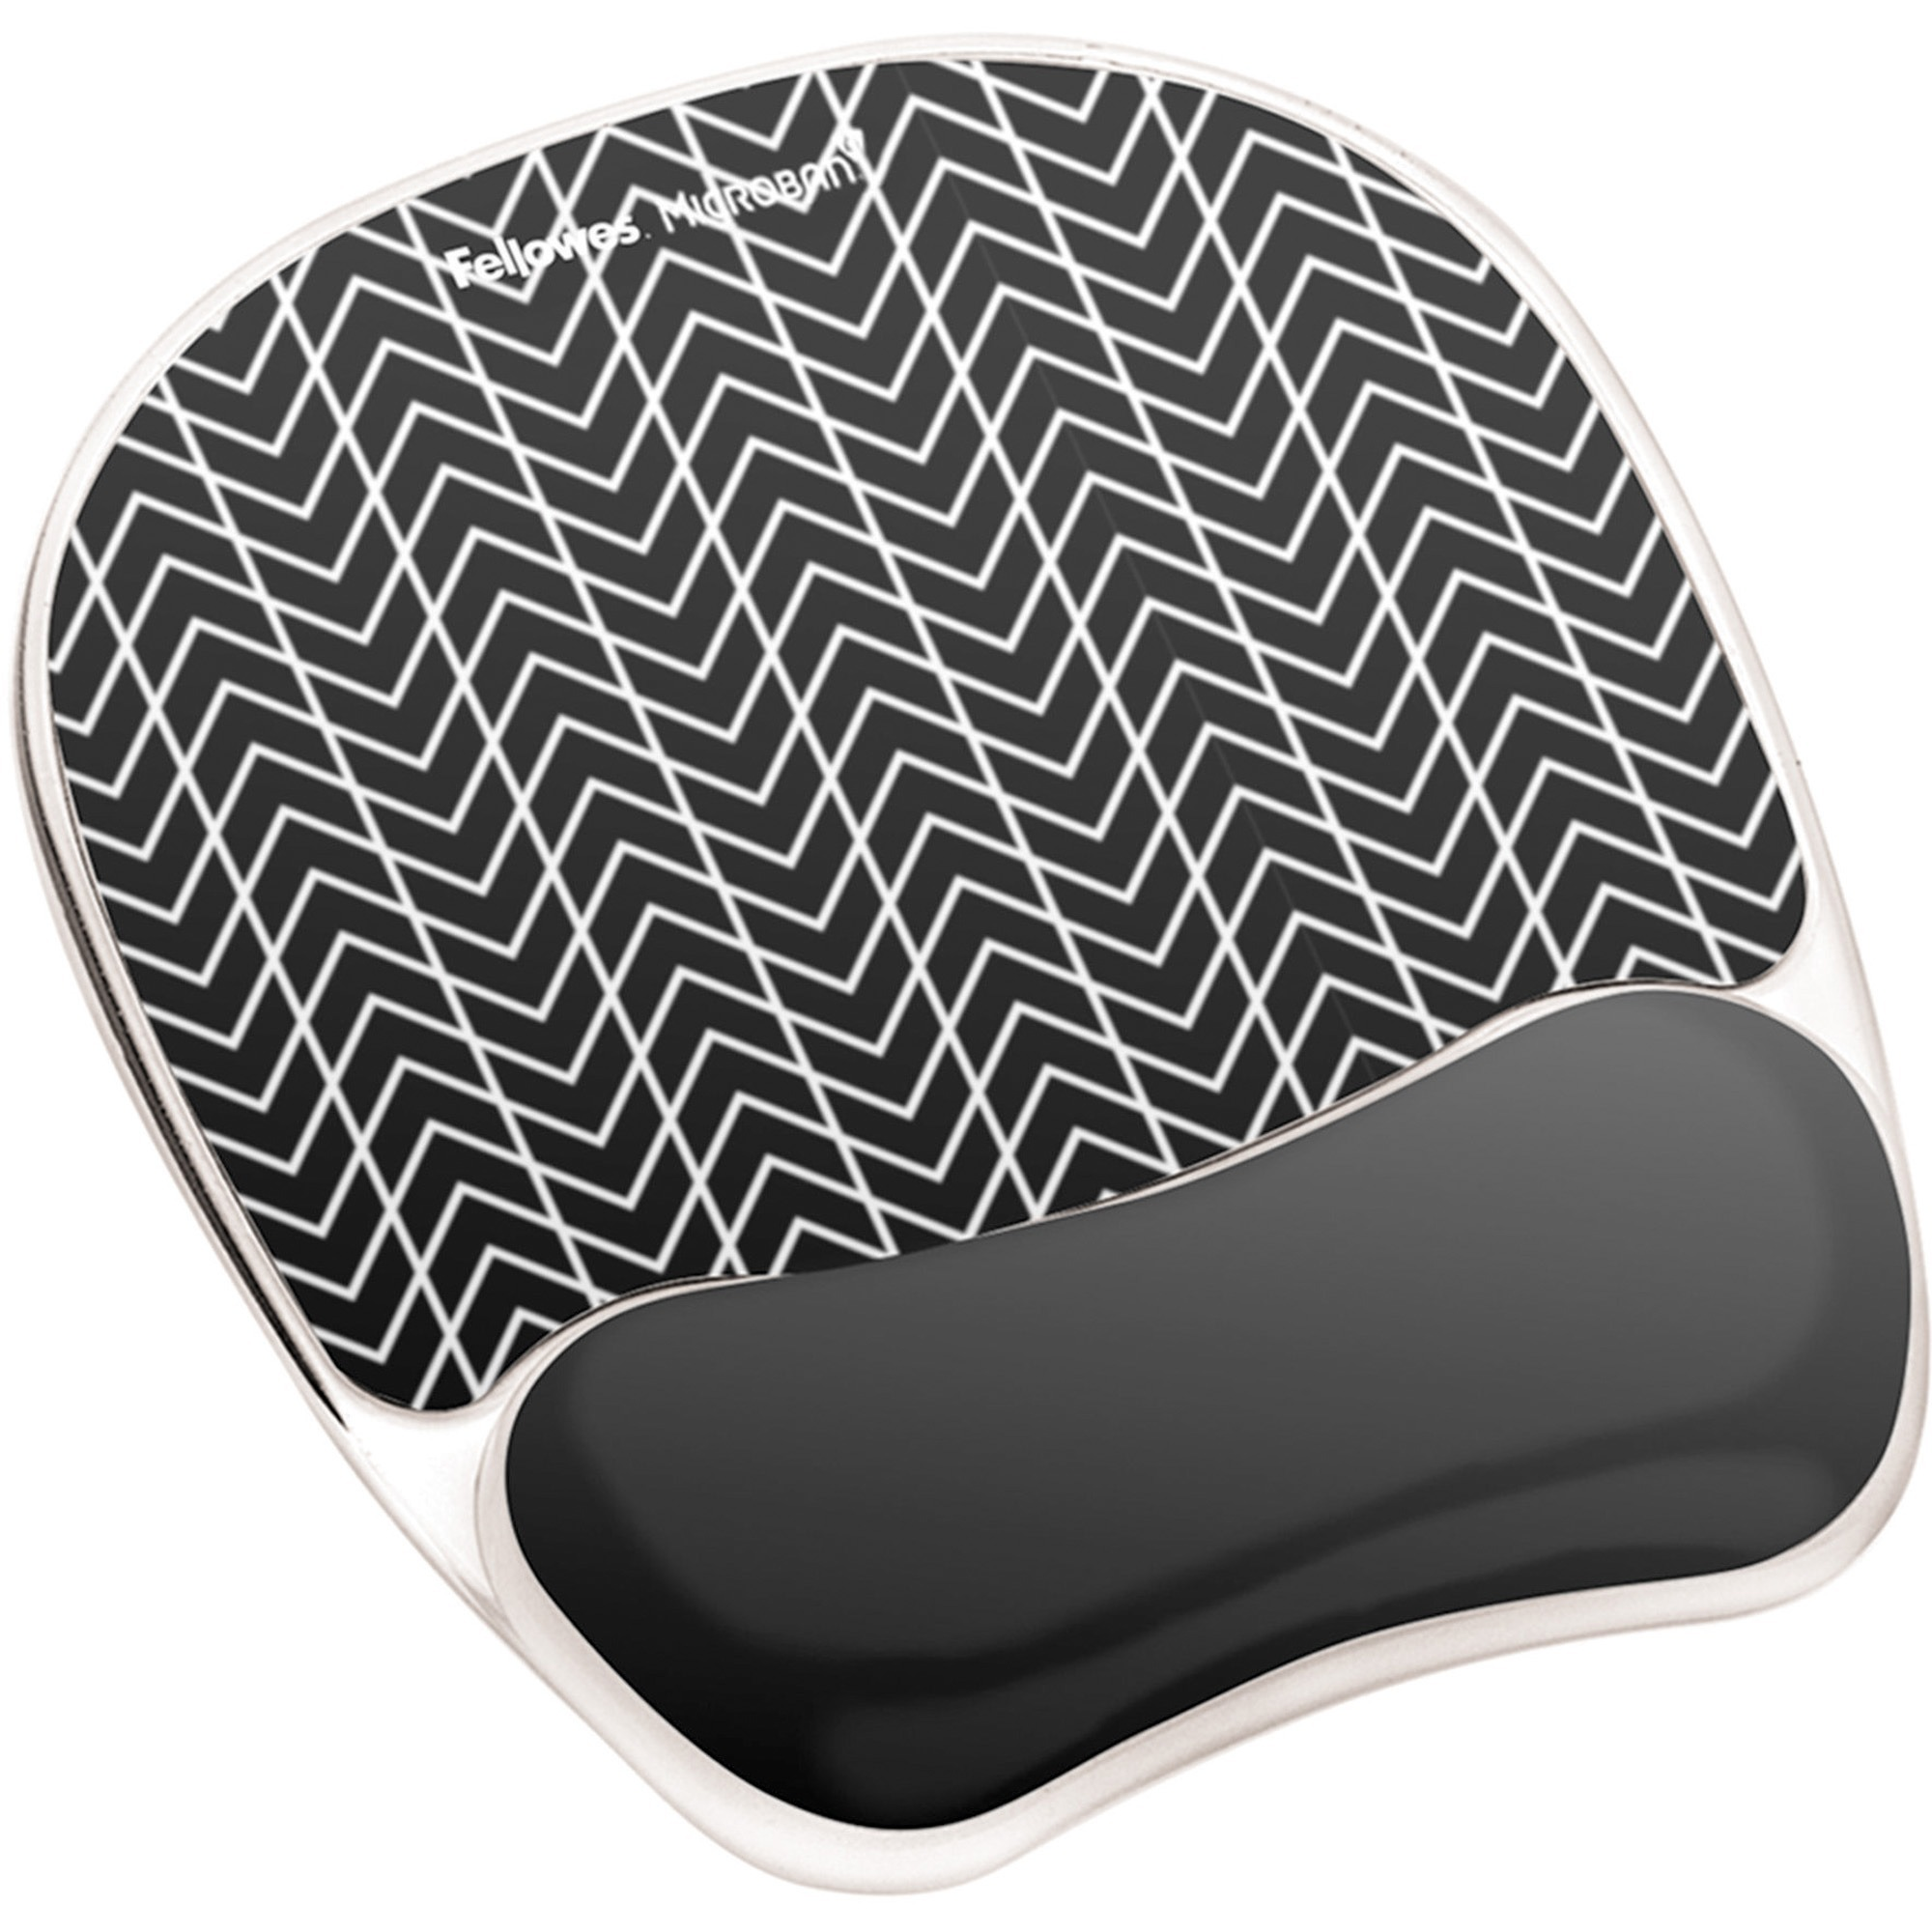 Fellowes, FEL9549901, Photo Gel Mouse Pad Wrist Rest with Microban® - Black Chevron, 1, Black,White